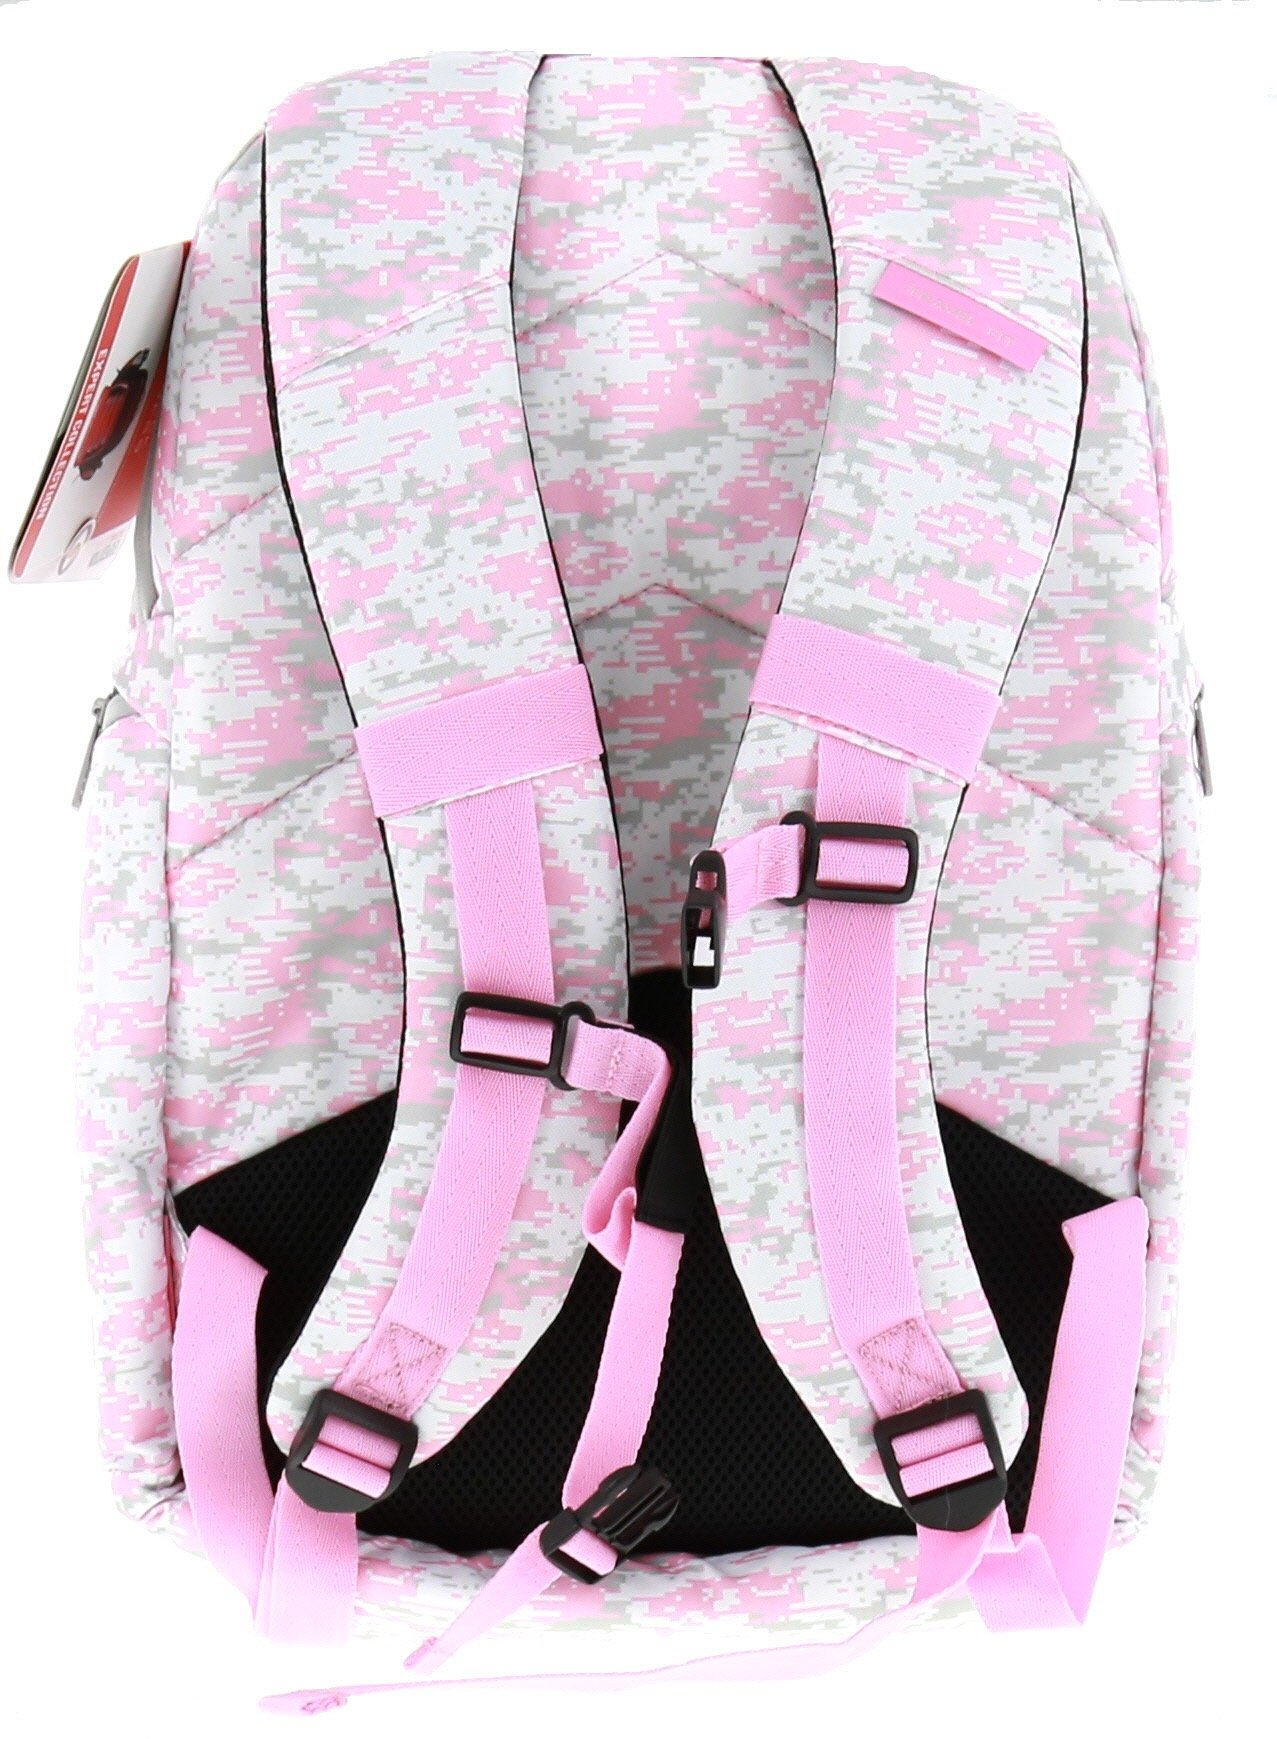 6 Pack Fitness Expedition Backpack W/ Removable Meal Management System 500 Pink & Grey Digital Camo w/ Bonus ZogoSportz Cyclone Shaker by 6 Pack Fitness (Image #7)